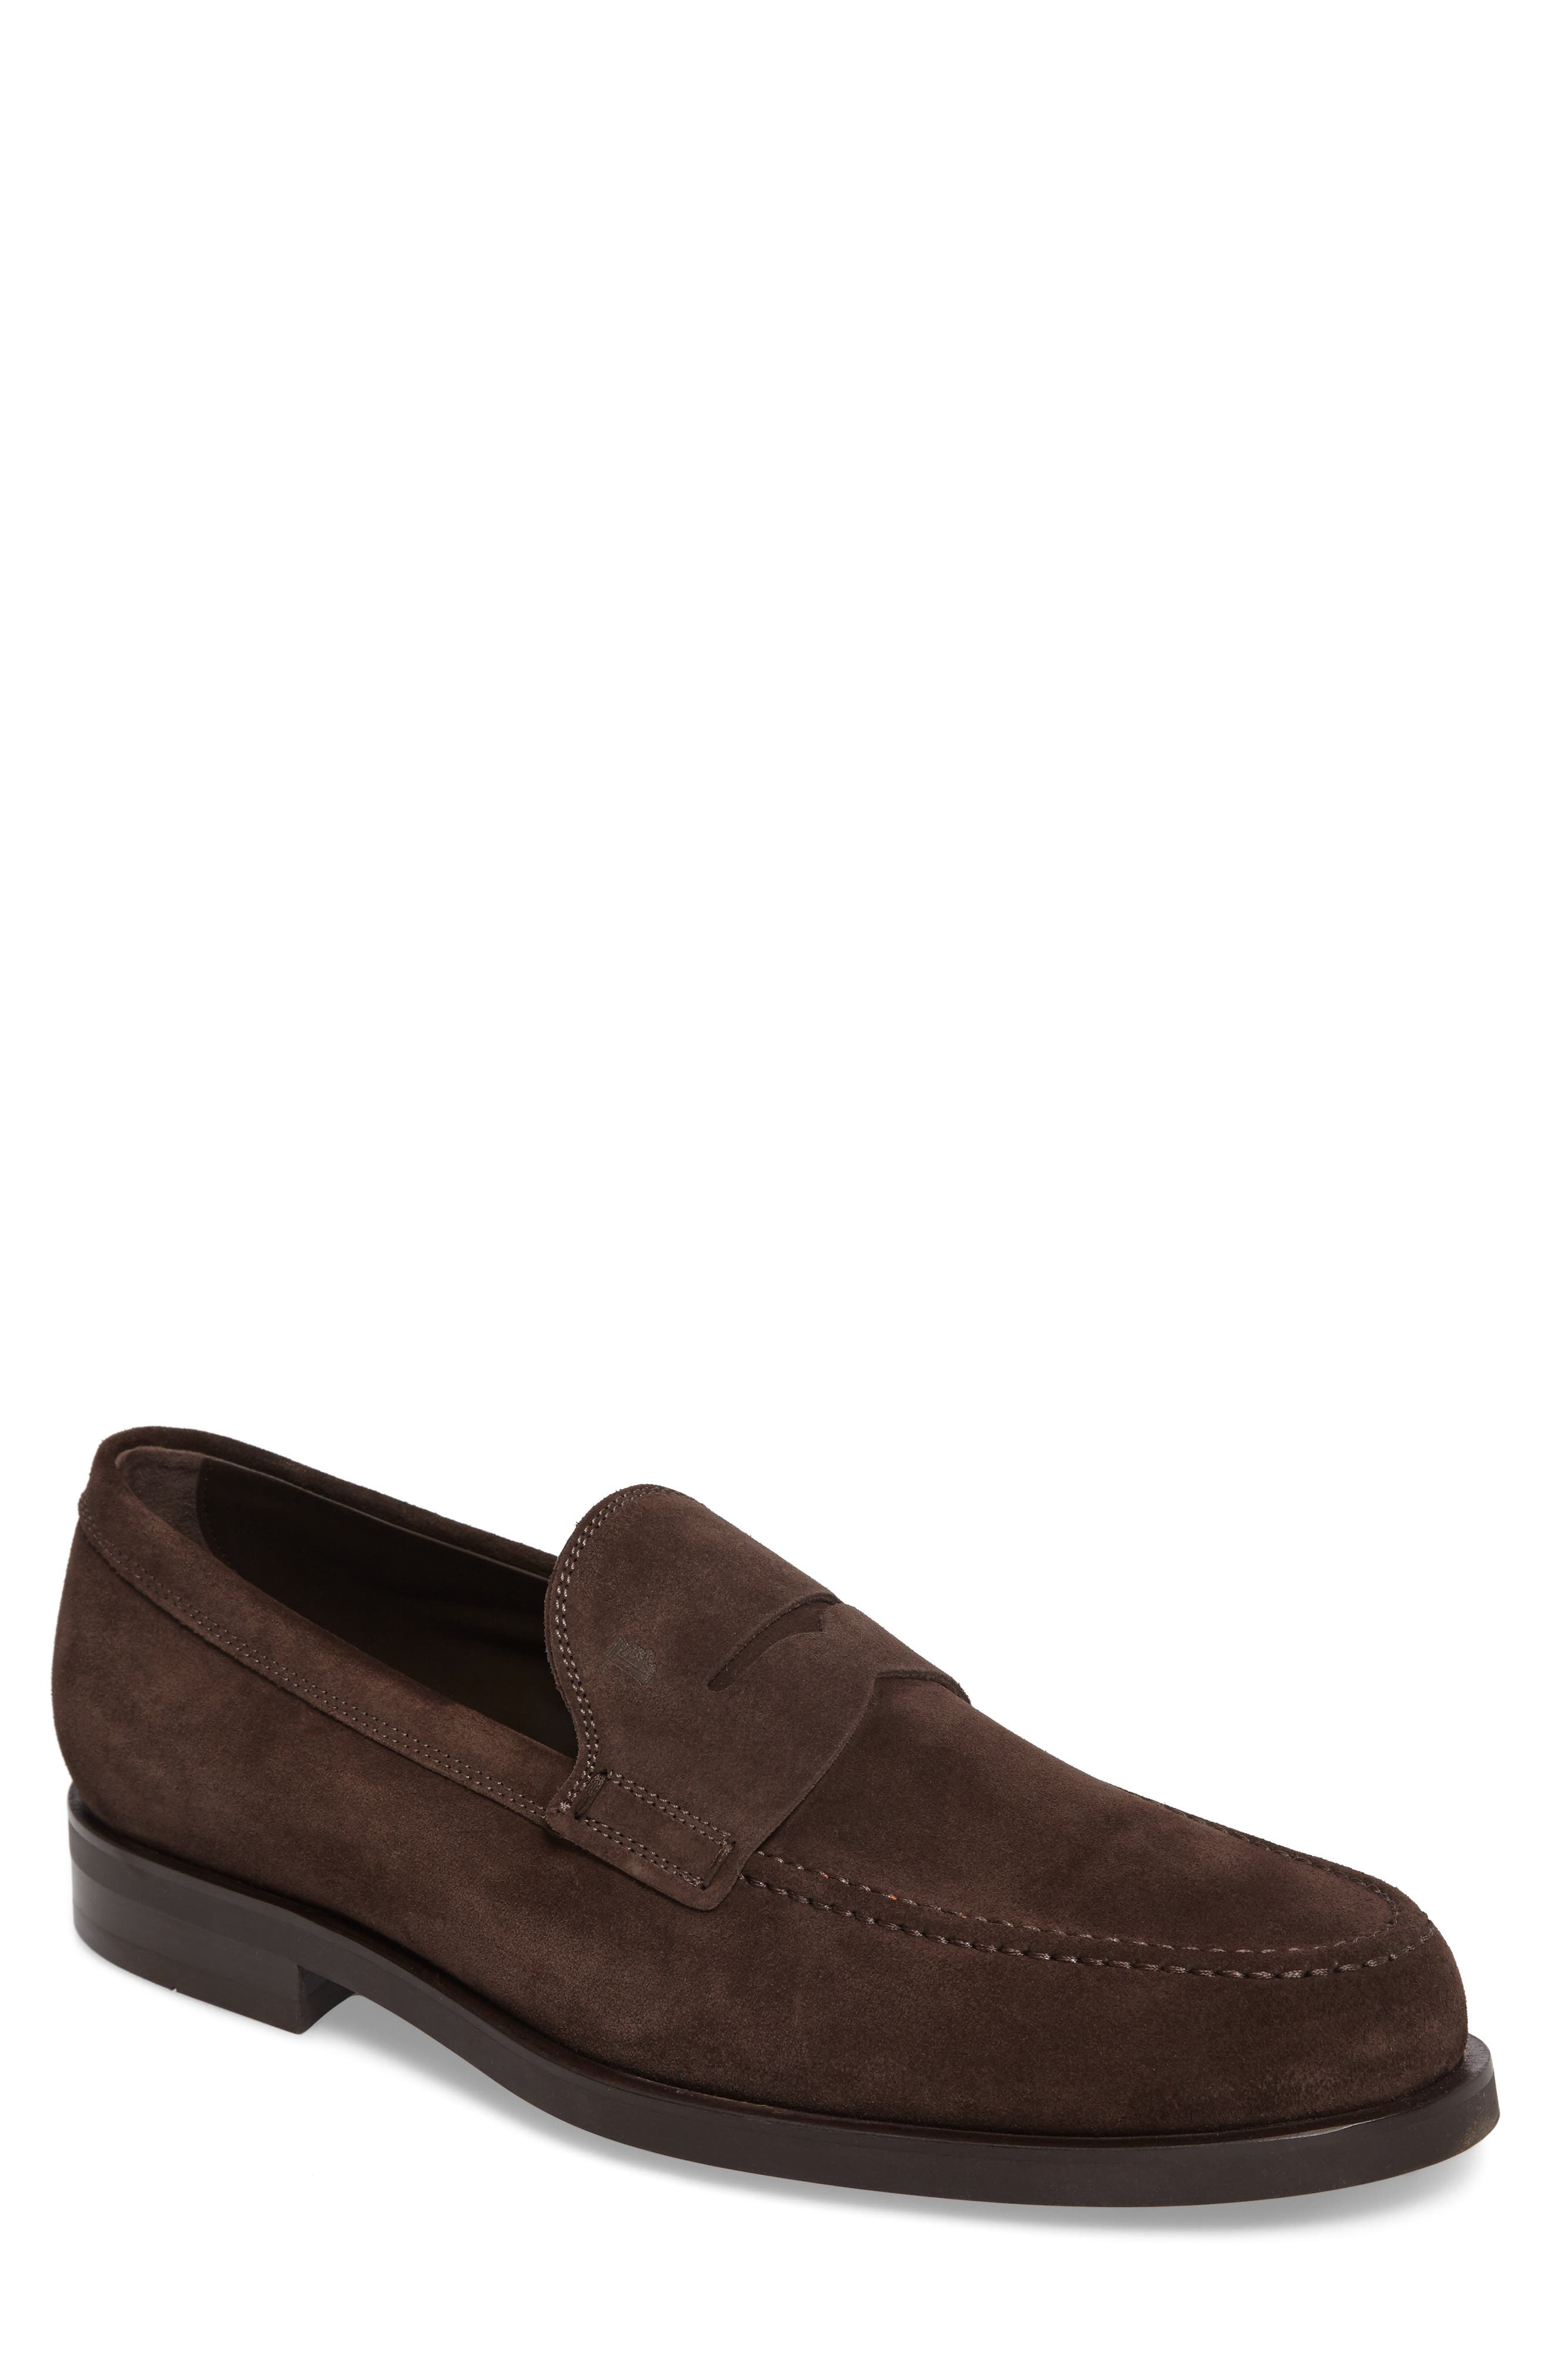 Penny Loafer,                         Main,                         color, 205